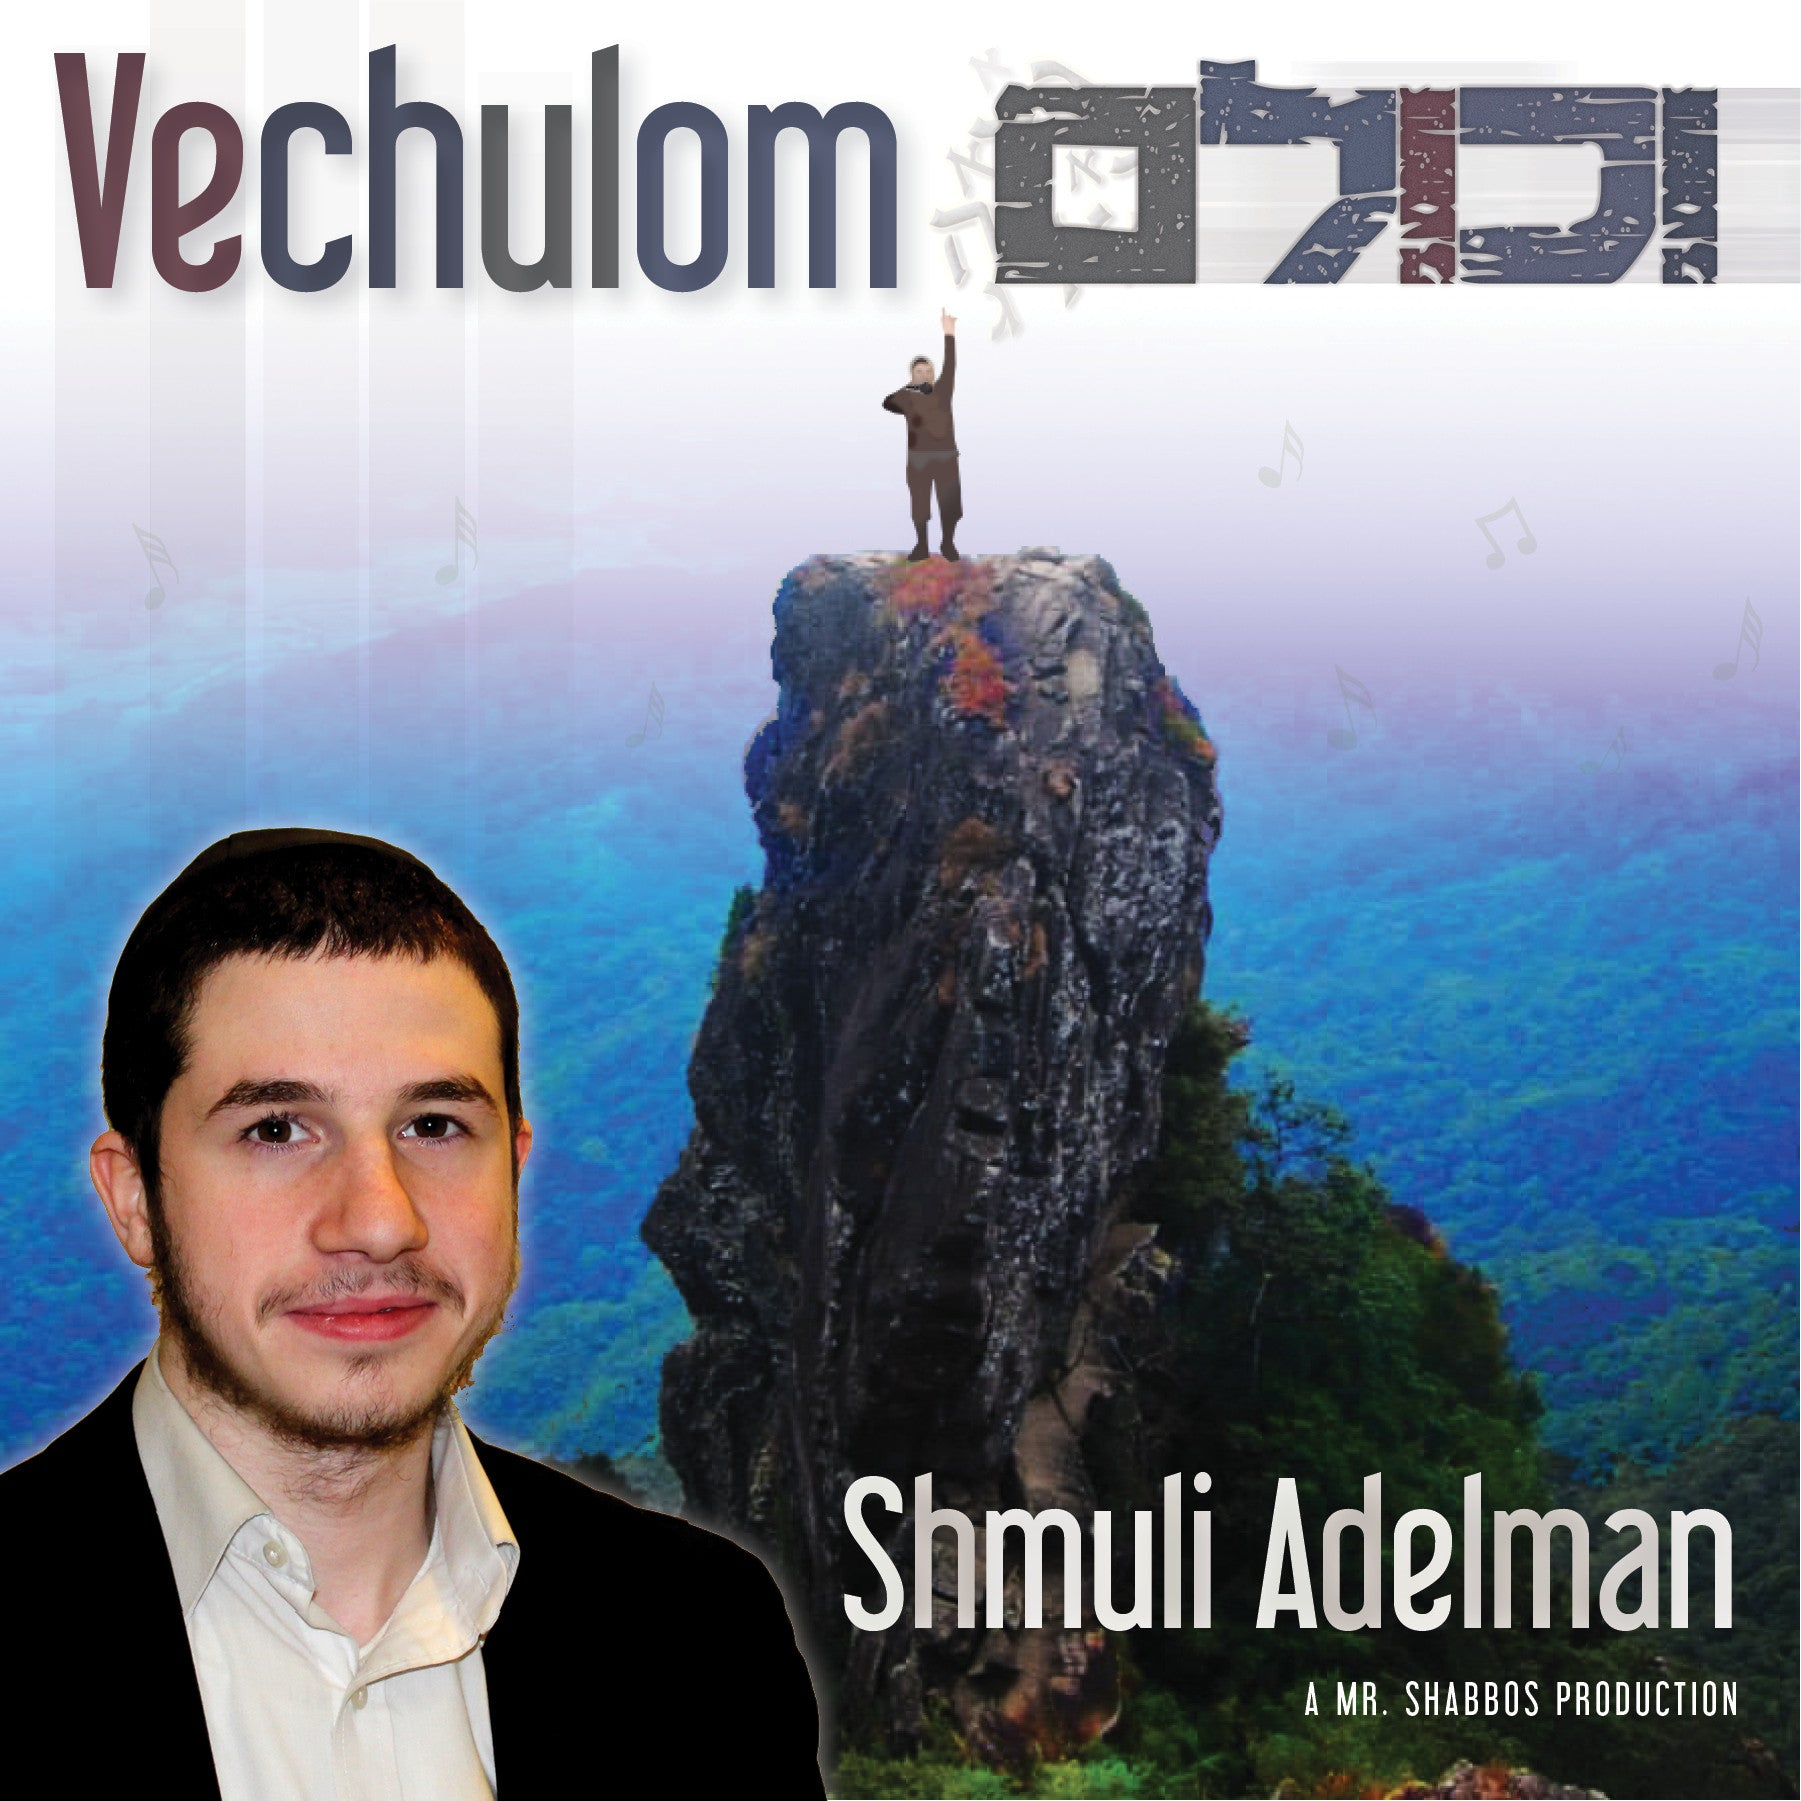 Shmuli Adelman - Vechulom - Single